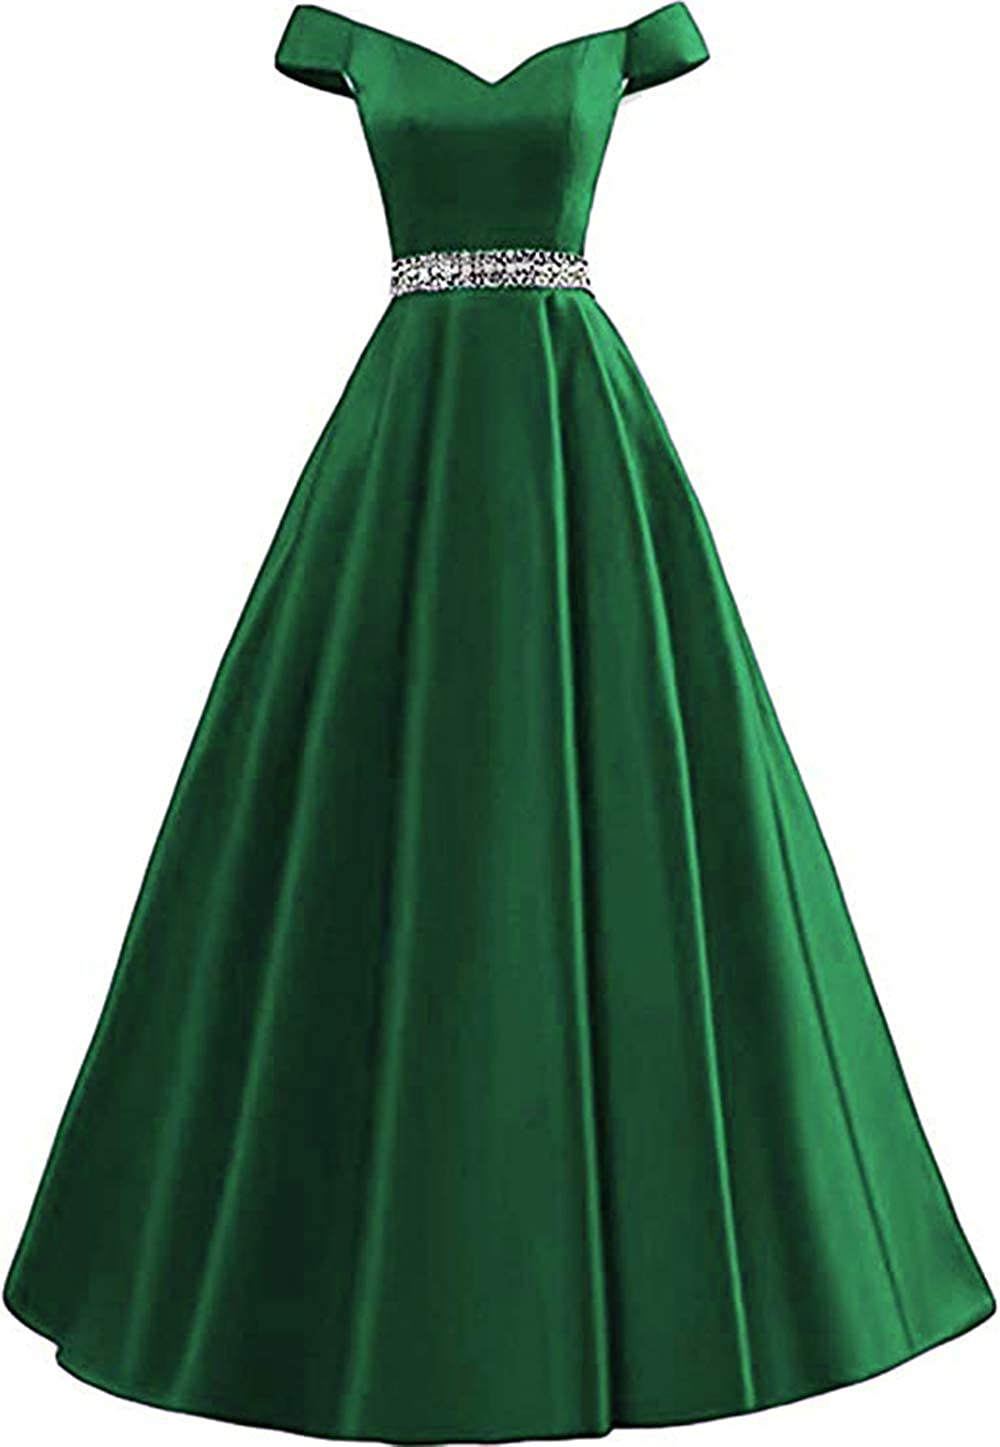 Green Rmaytiked Women's Off Shoulder Prom Dresses Long 2019 Satin Beaded A Line Formal Evening Ball Gowns with Pockets